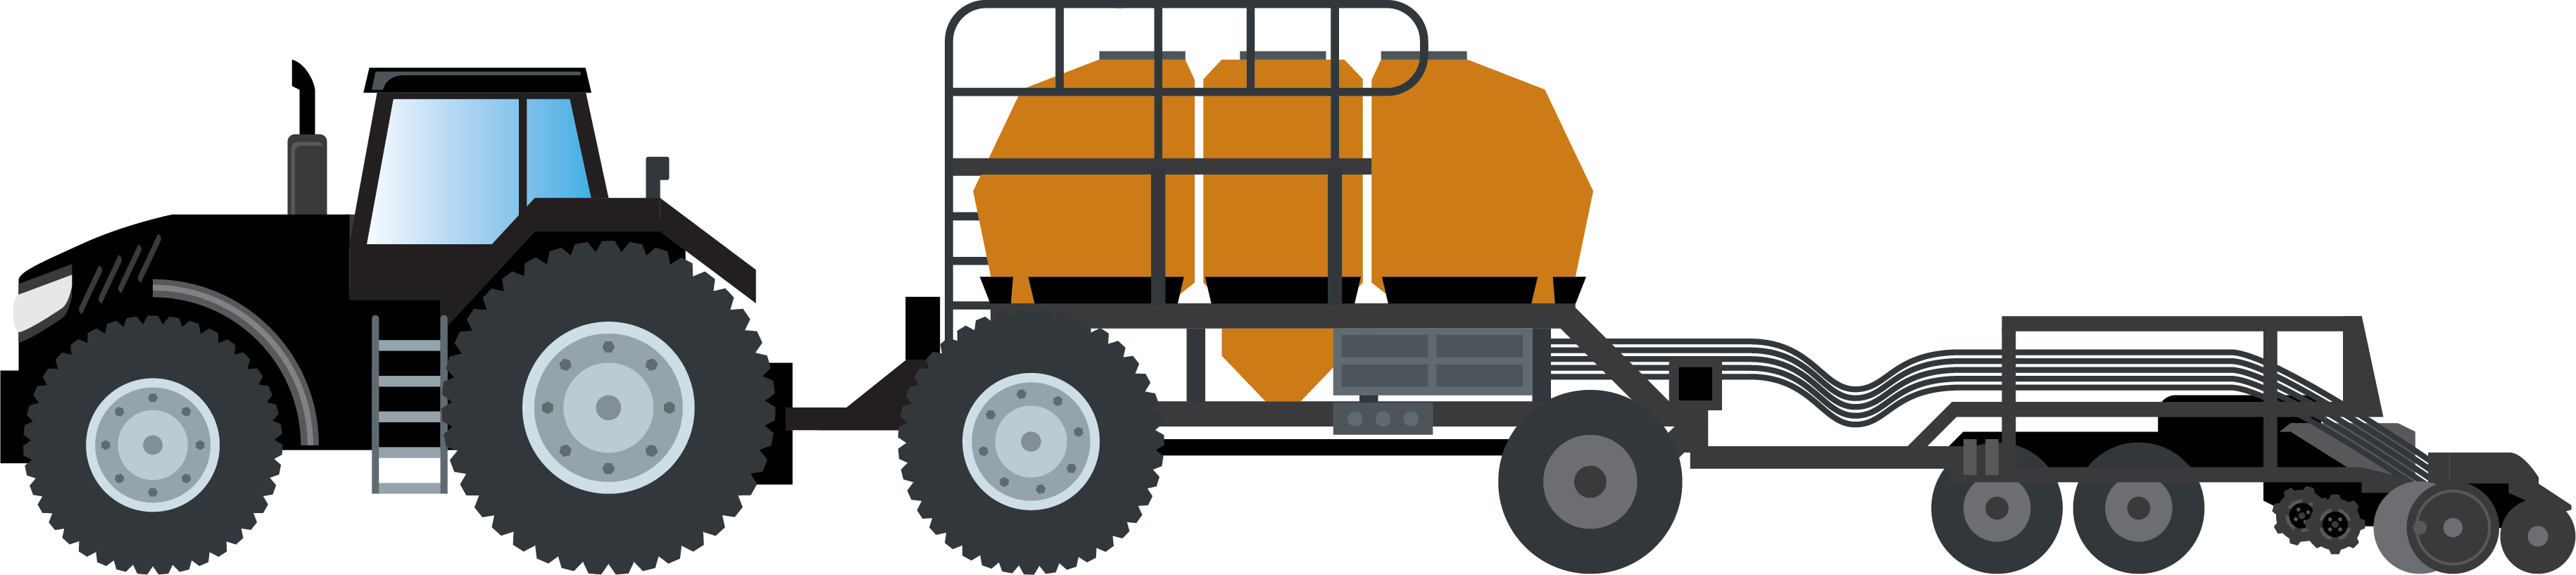 Image of animated tractor with air seeder and tank setup